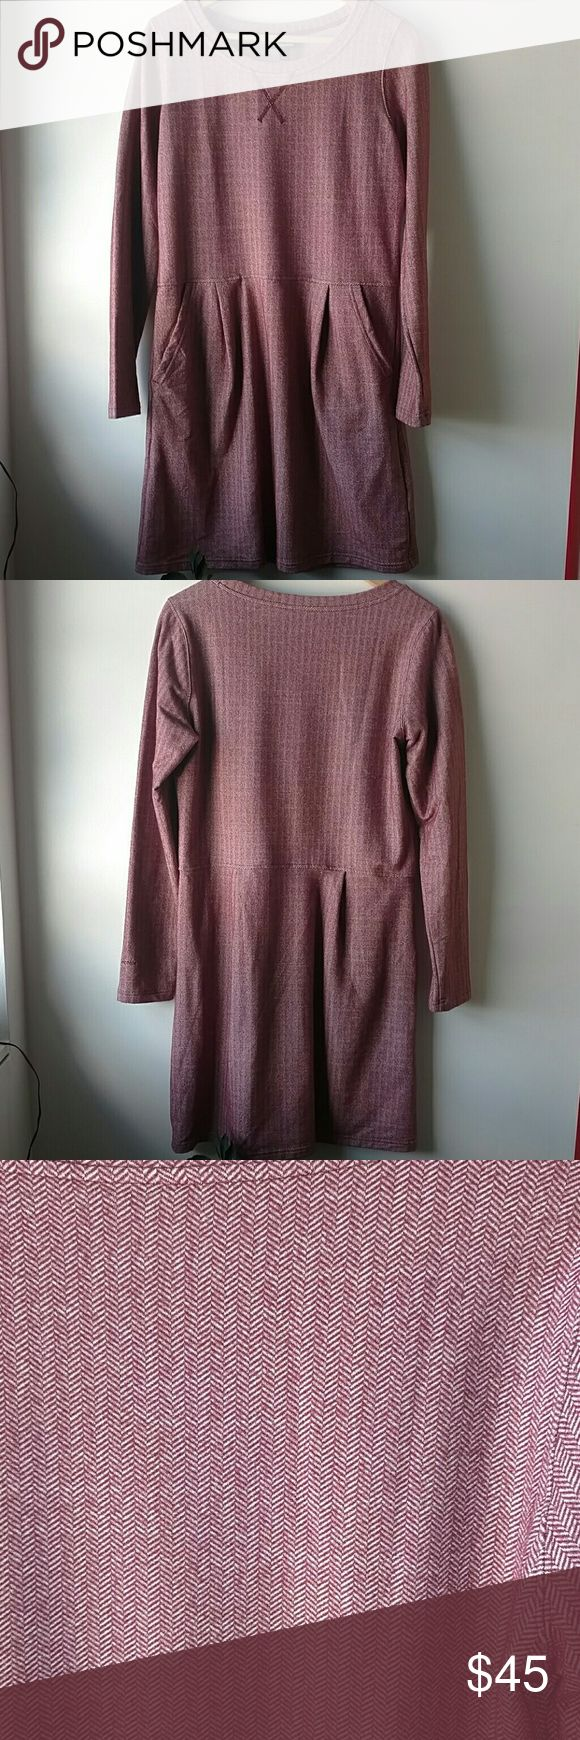 Patagonia dress Worn a few times, still in excellent condition, size medium, with pockets, great for cold weather, fits like a size 6, oxblood herringbone Patagonia Dresses Long Sleeve